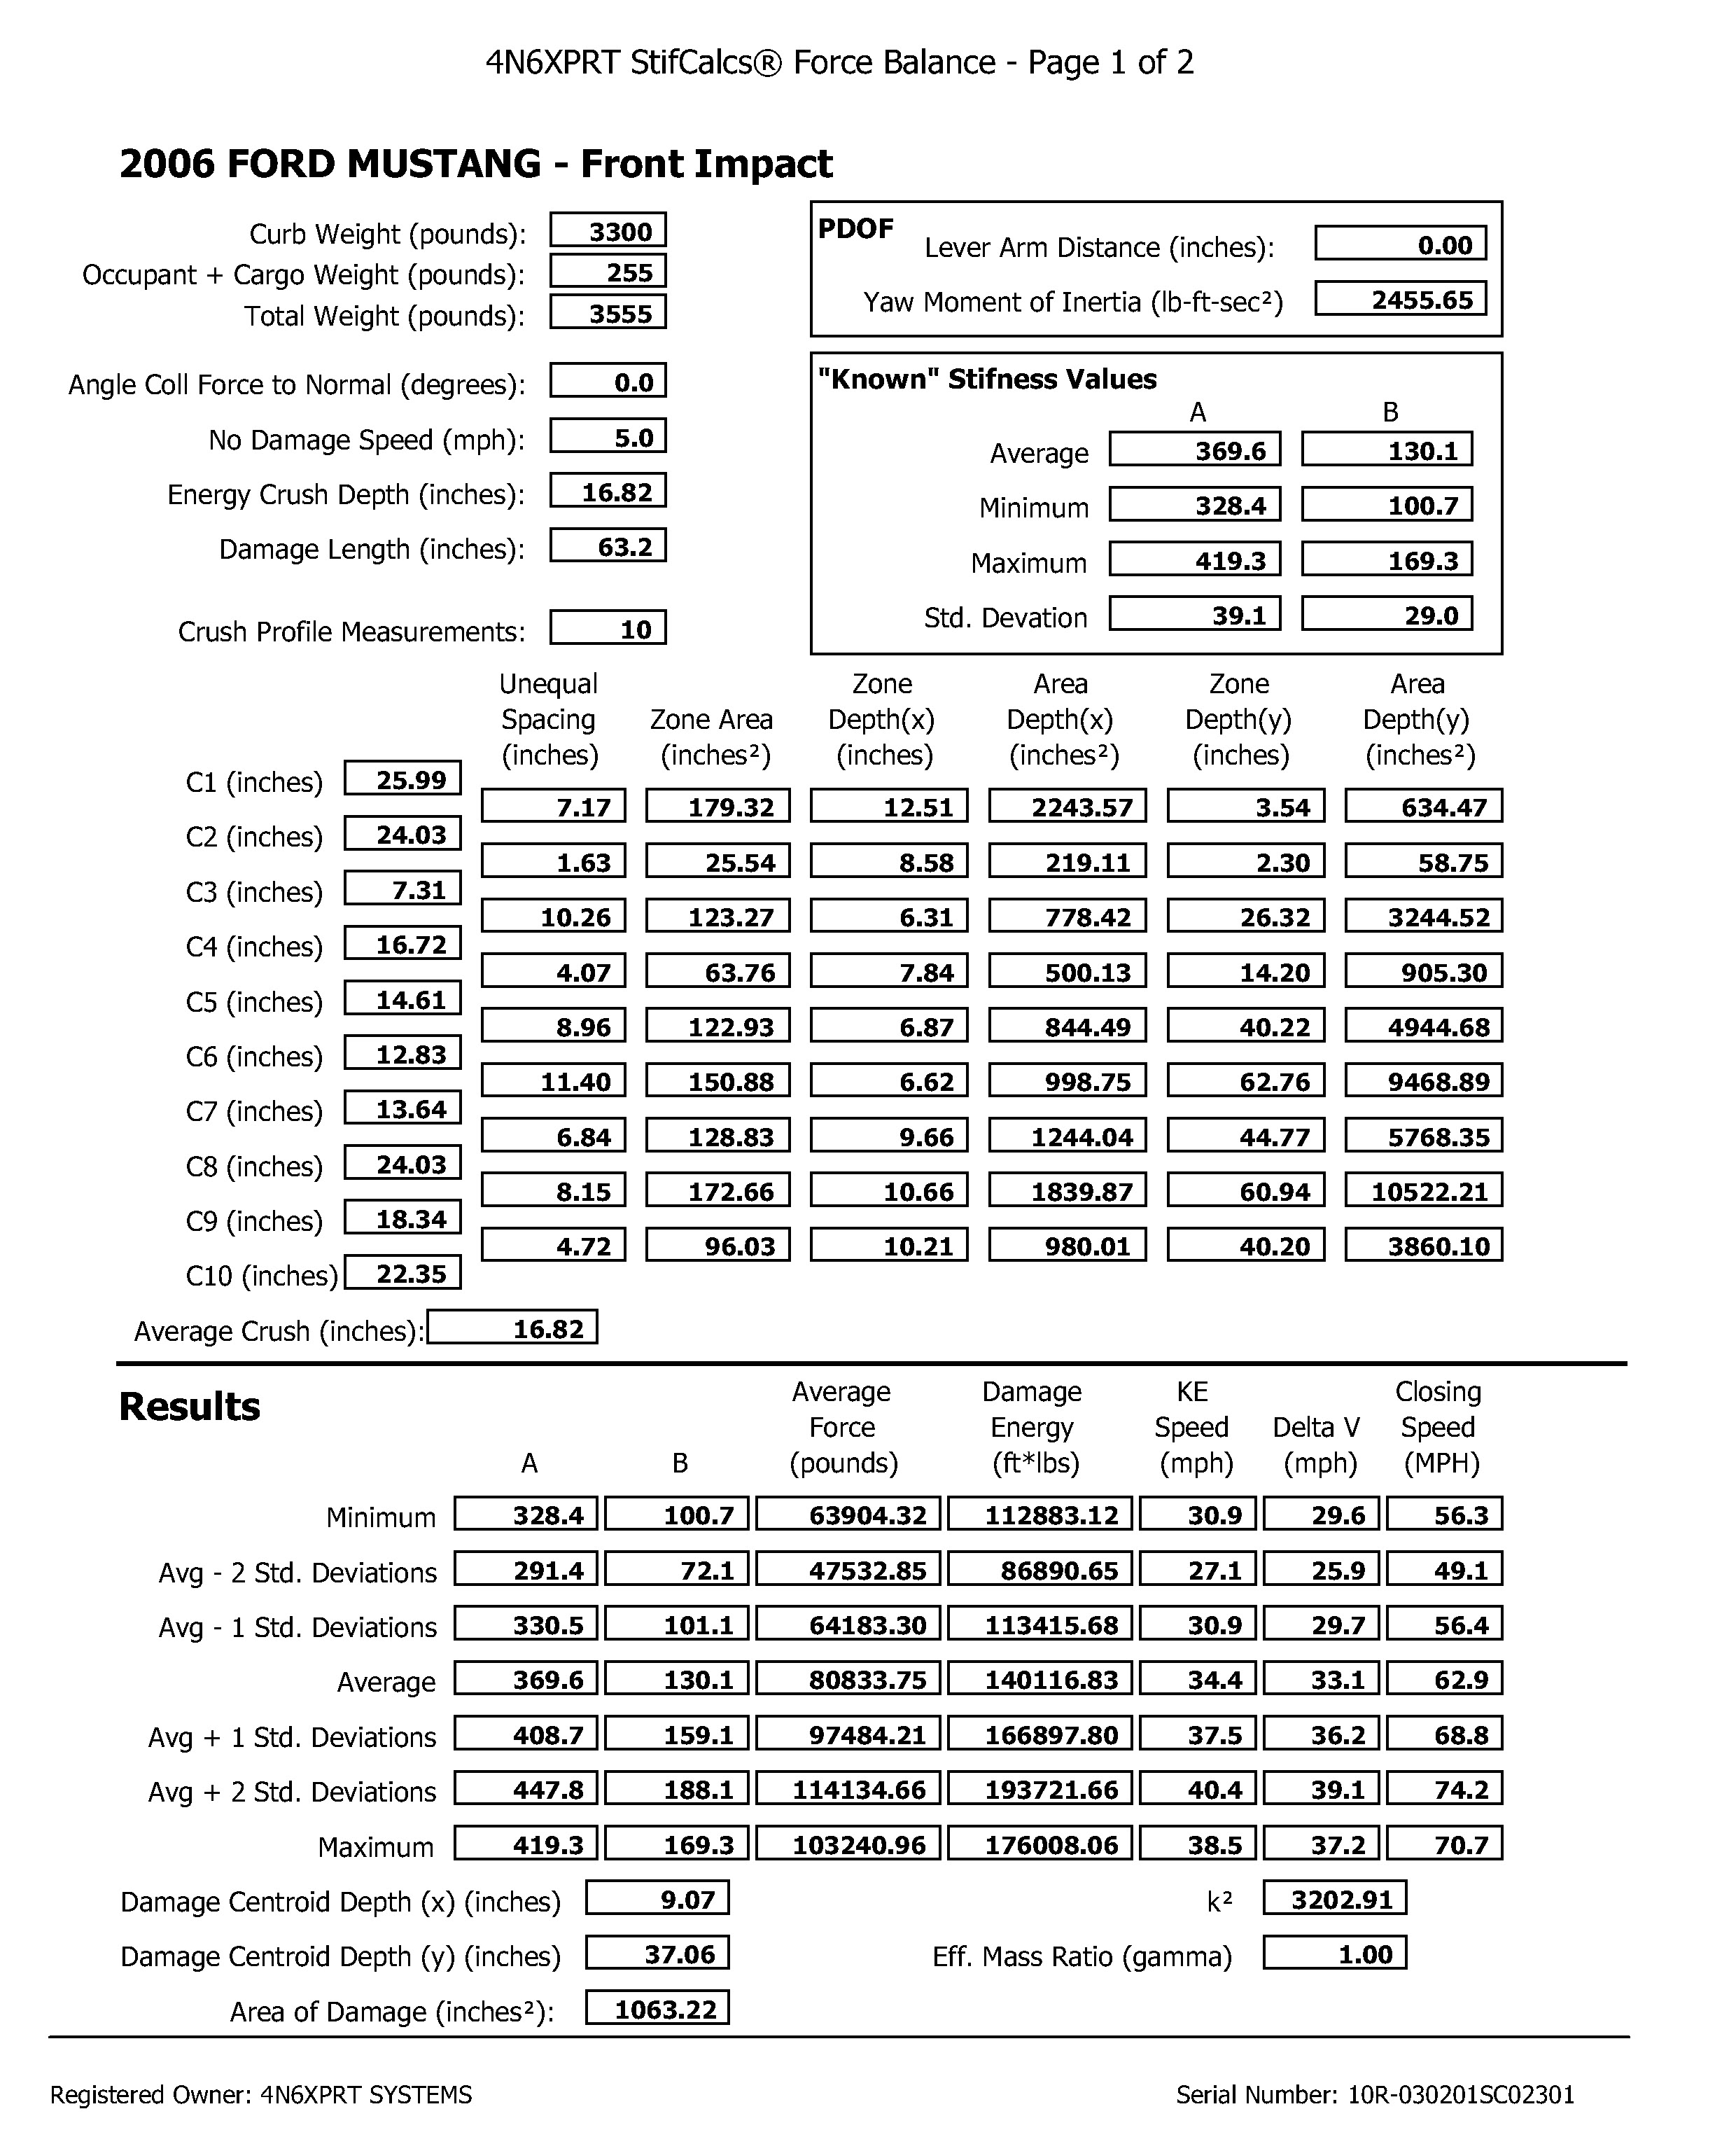 Force Balance Output Results for 2006 Ford Mustang